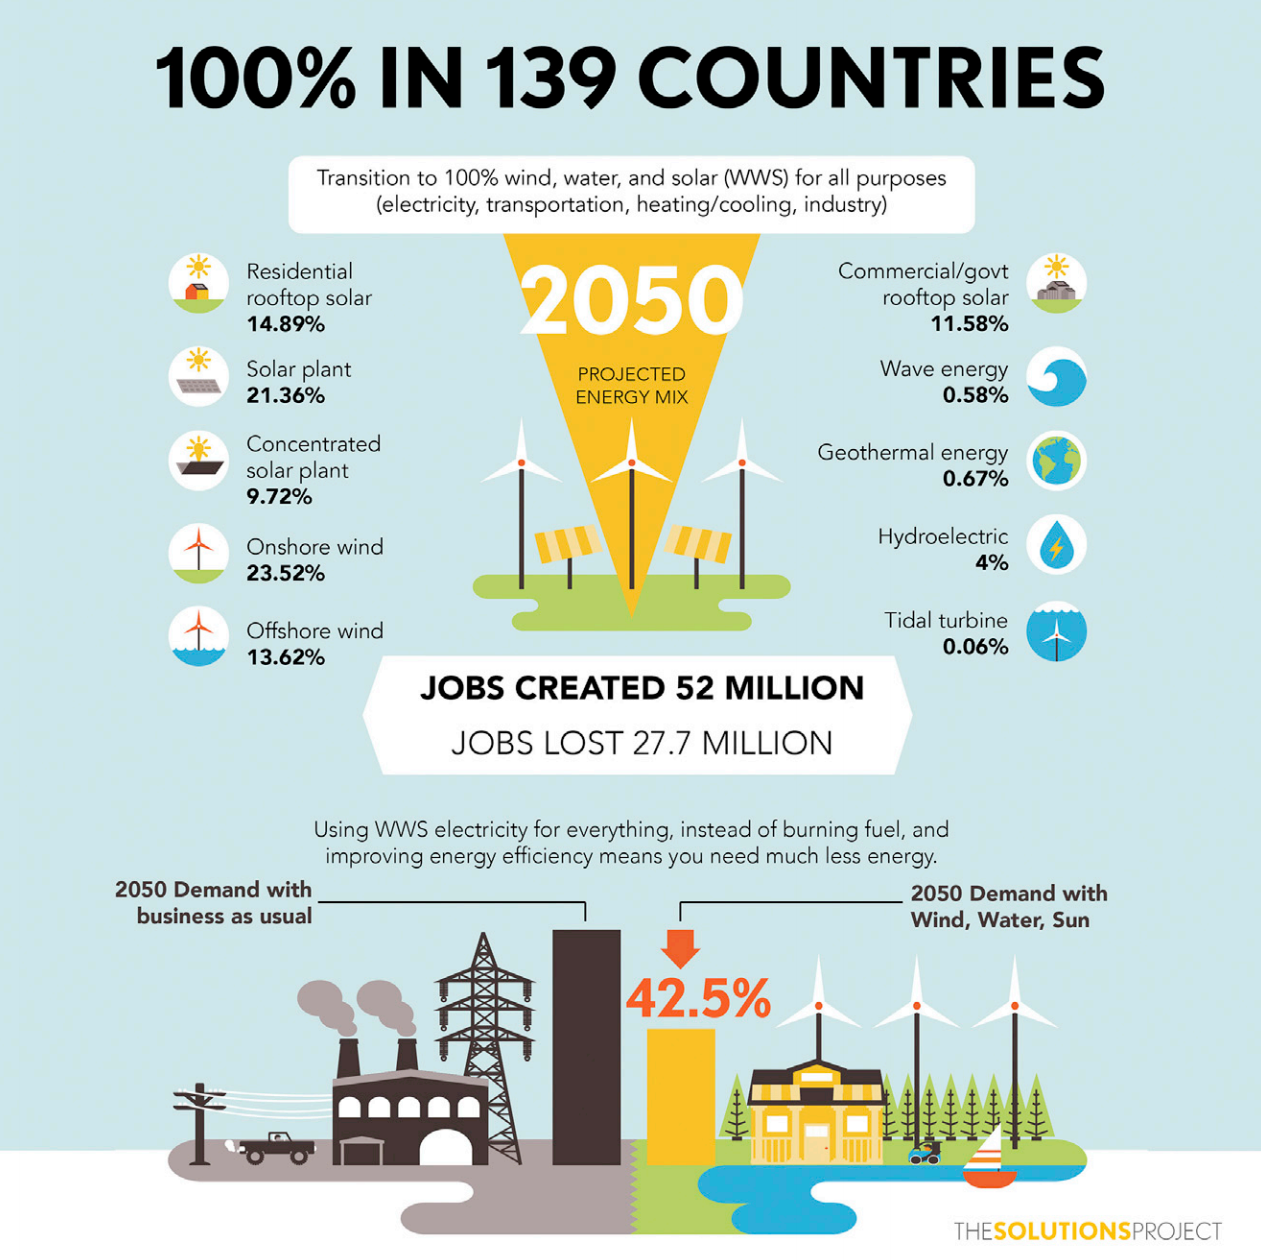 Prof Mark Jacobson's roadmap takes 139 countries to 100% renewable energy